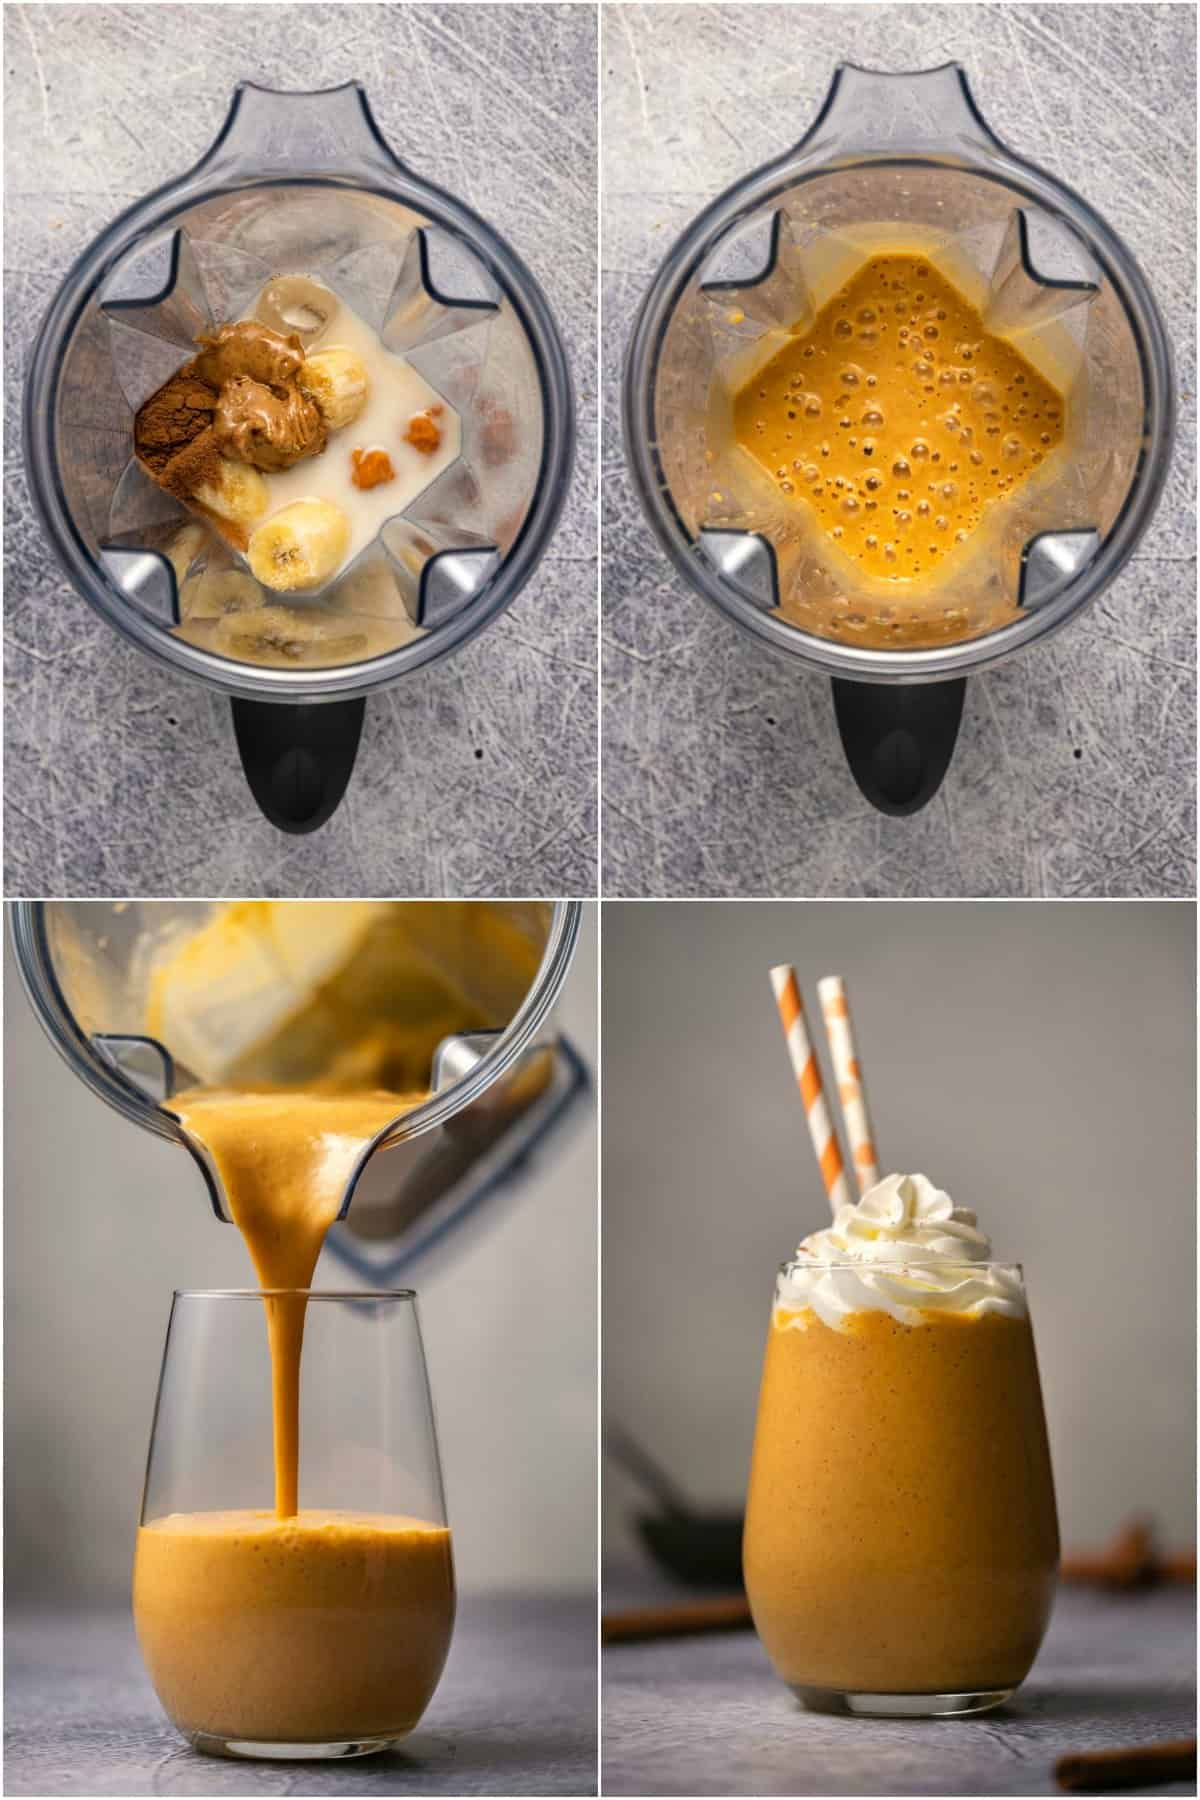 Step by step process photo collage of making a pumpkin pie smoothie.